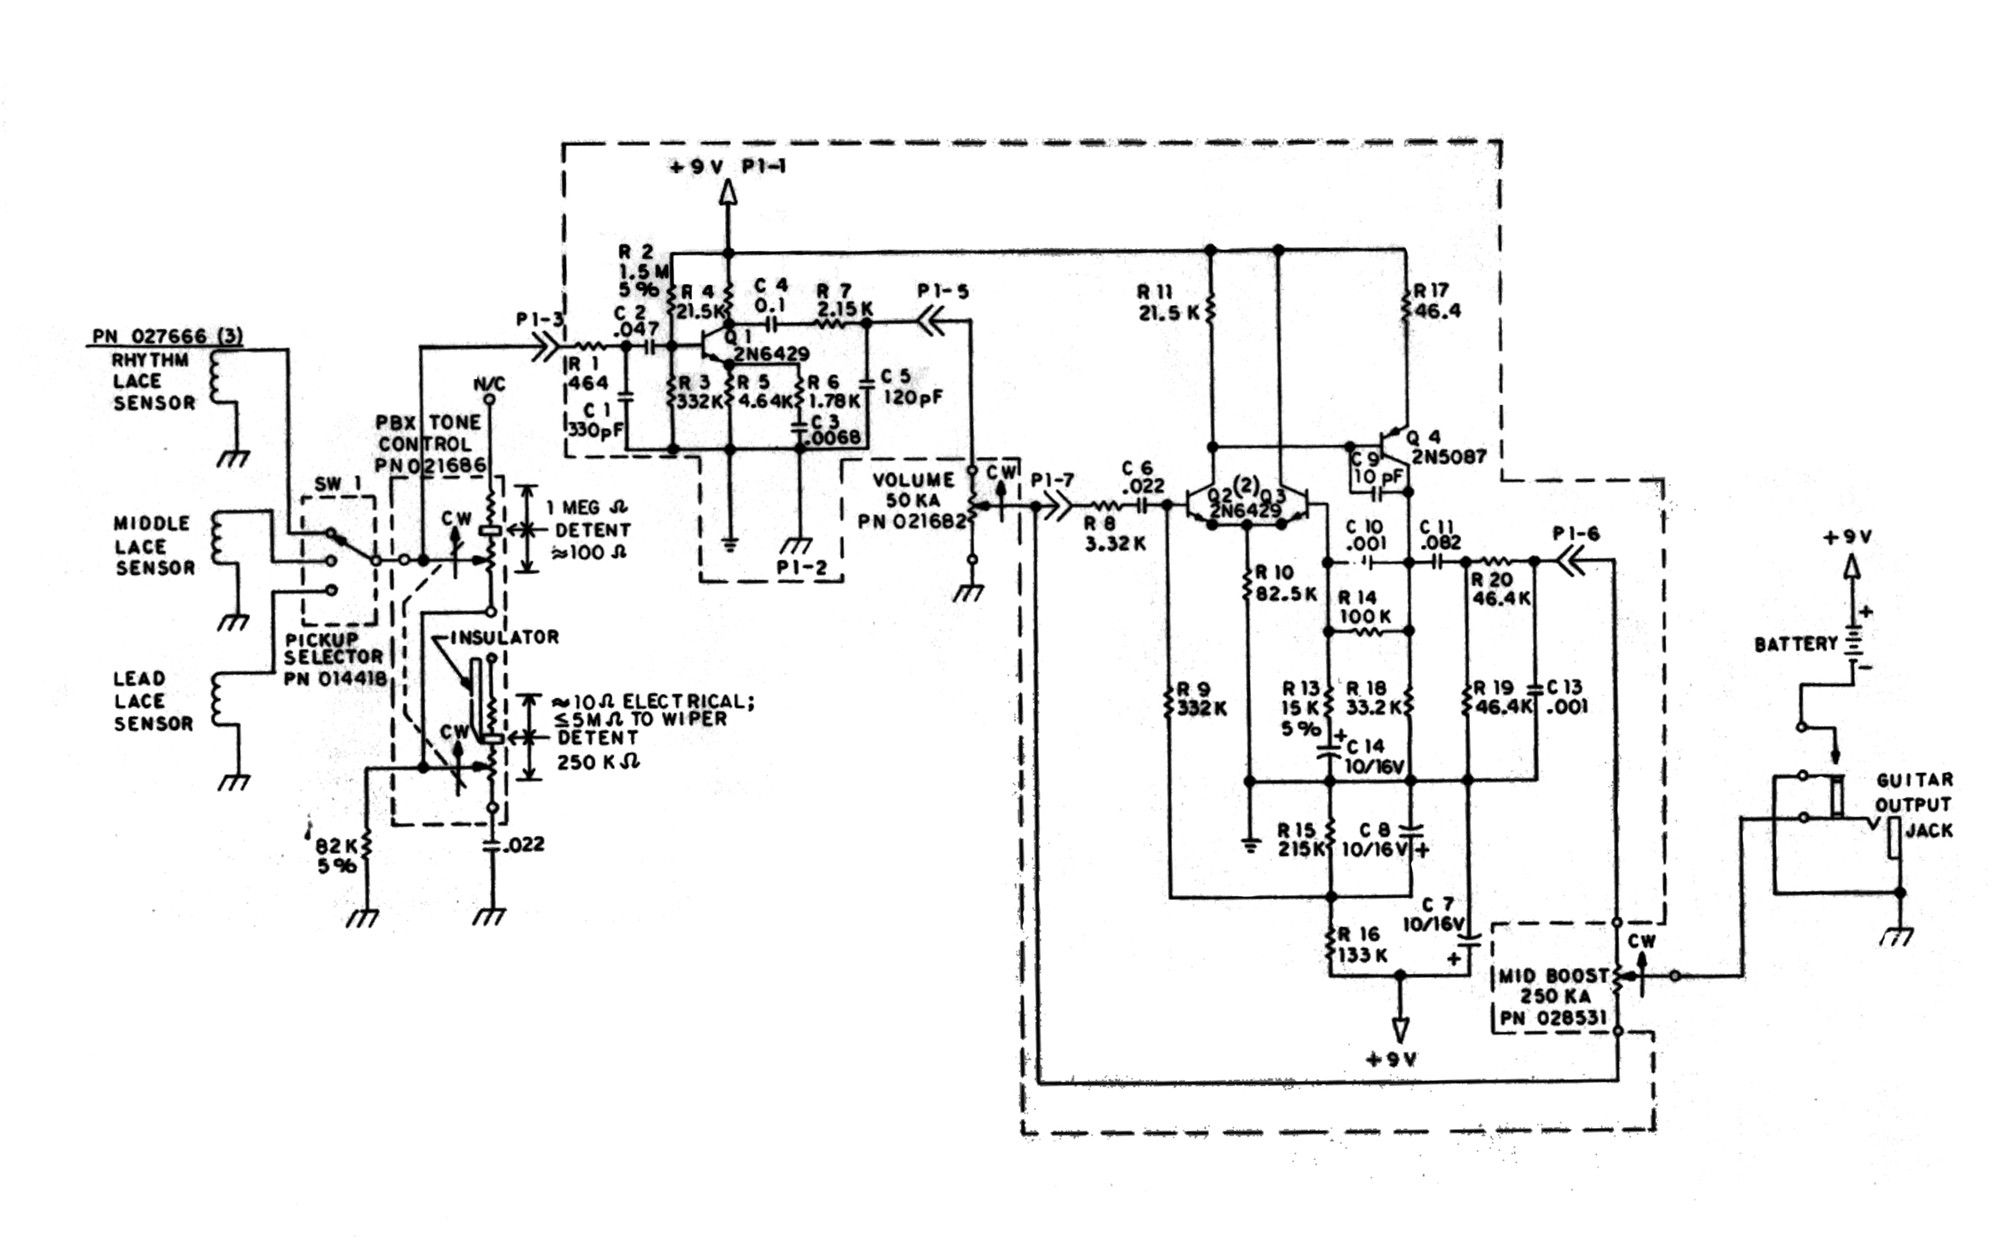 fender noiseless jazz bass pickups wiring diagram fresh stewmac intended for stewmac wiring diagrams [ 2000 x 1259 Pixel ]